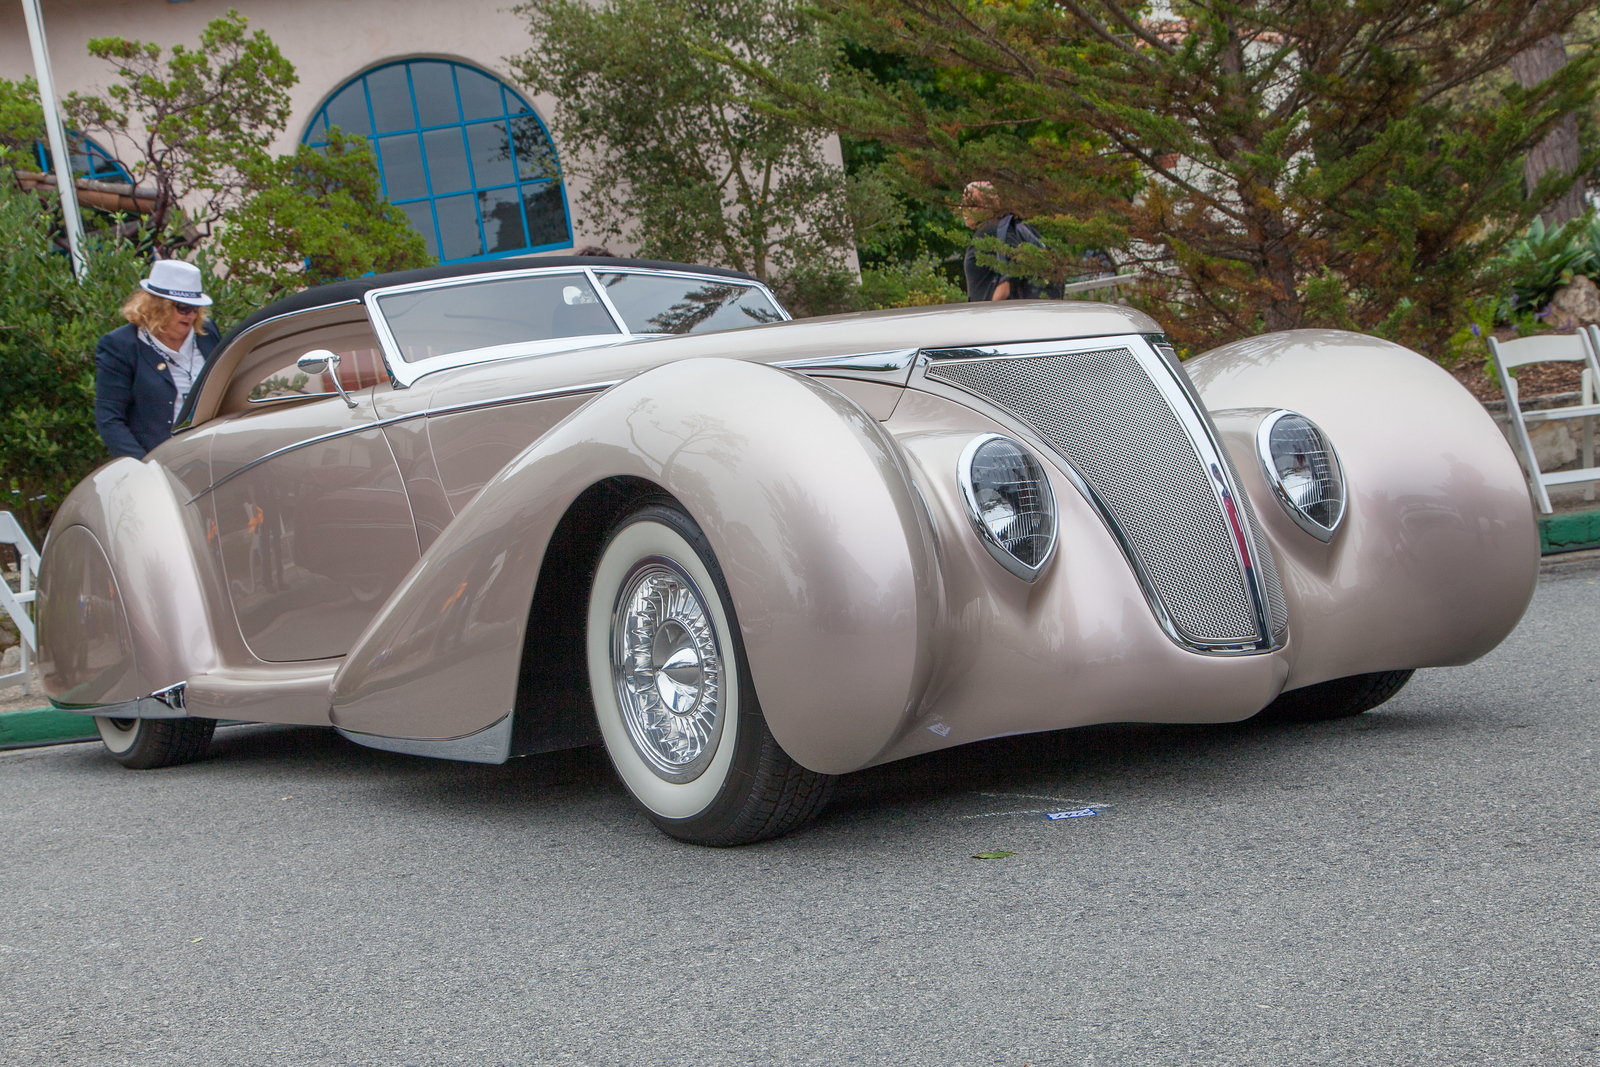 1937 FordRoadster Coachbuilt Custom 'After Shock'